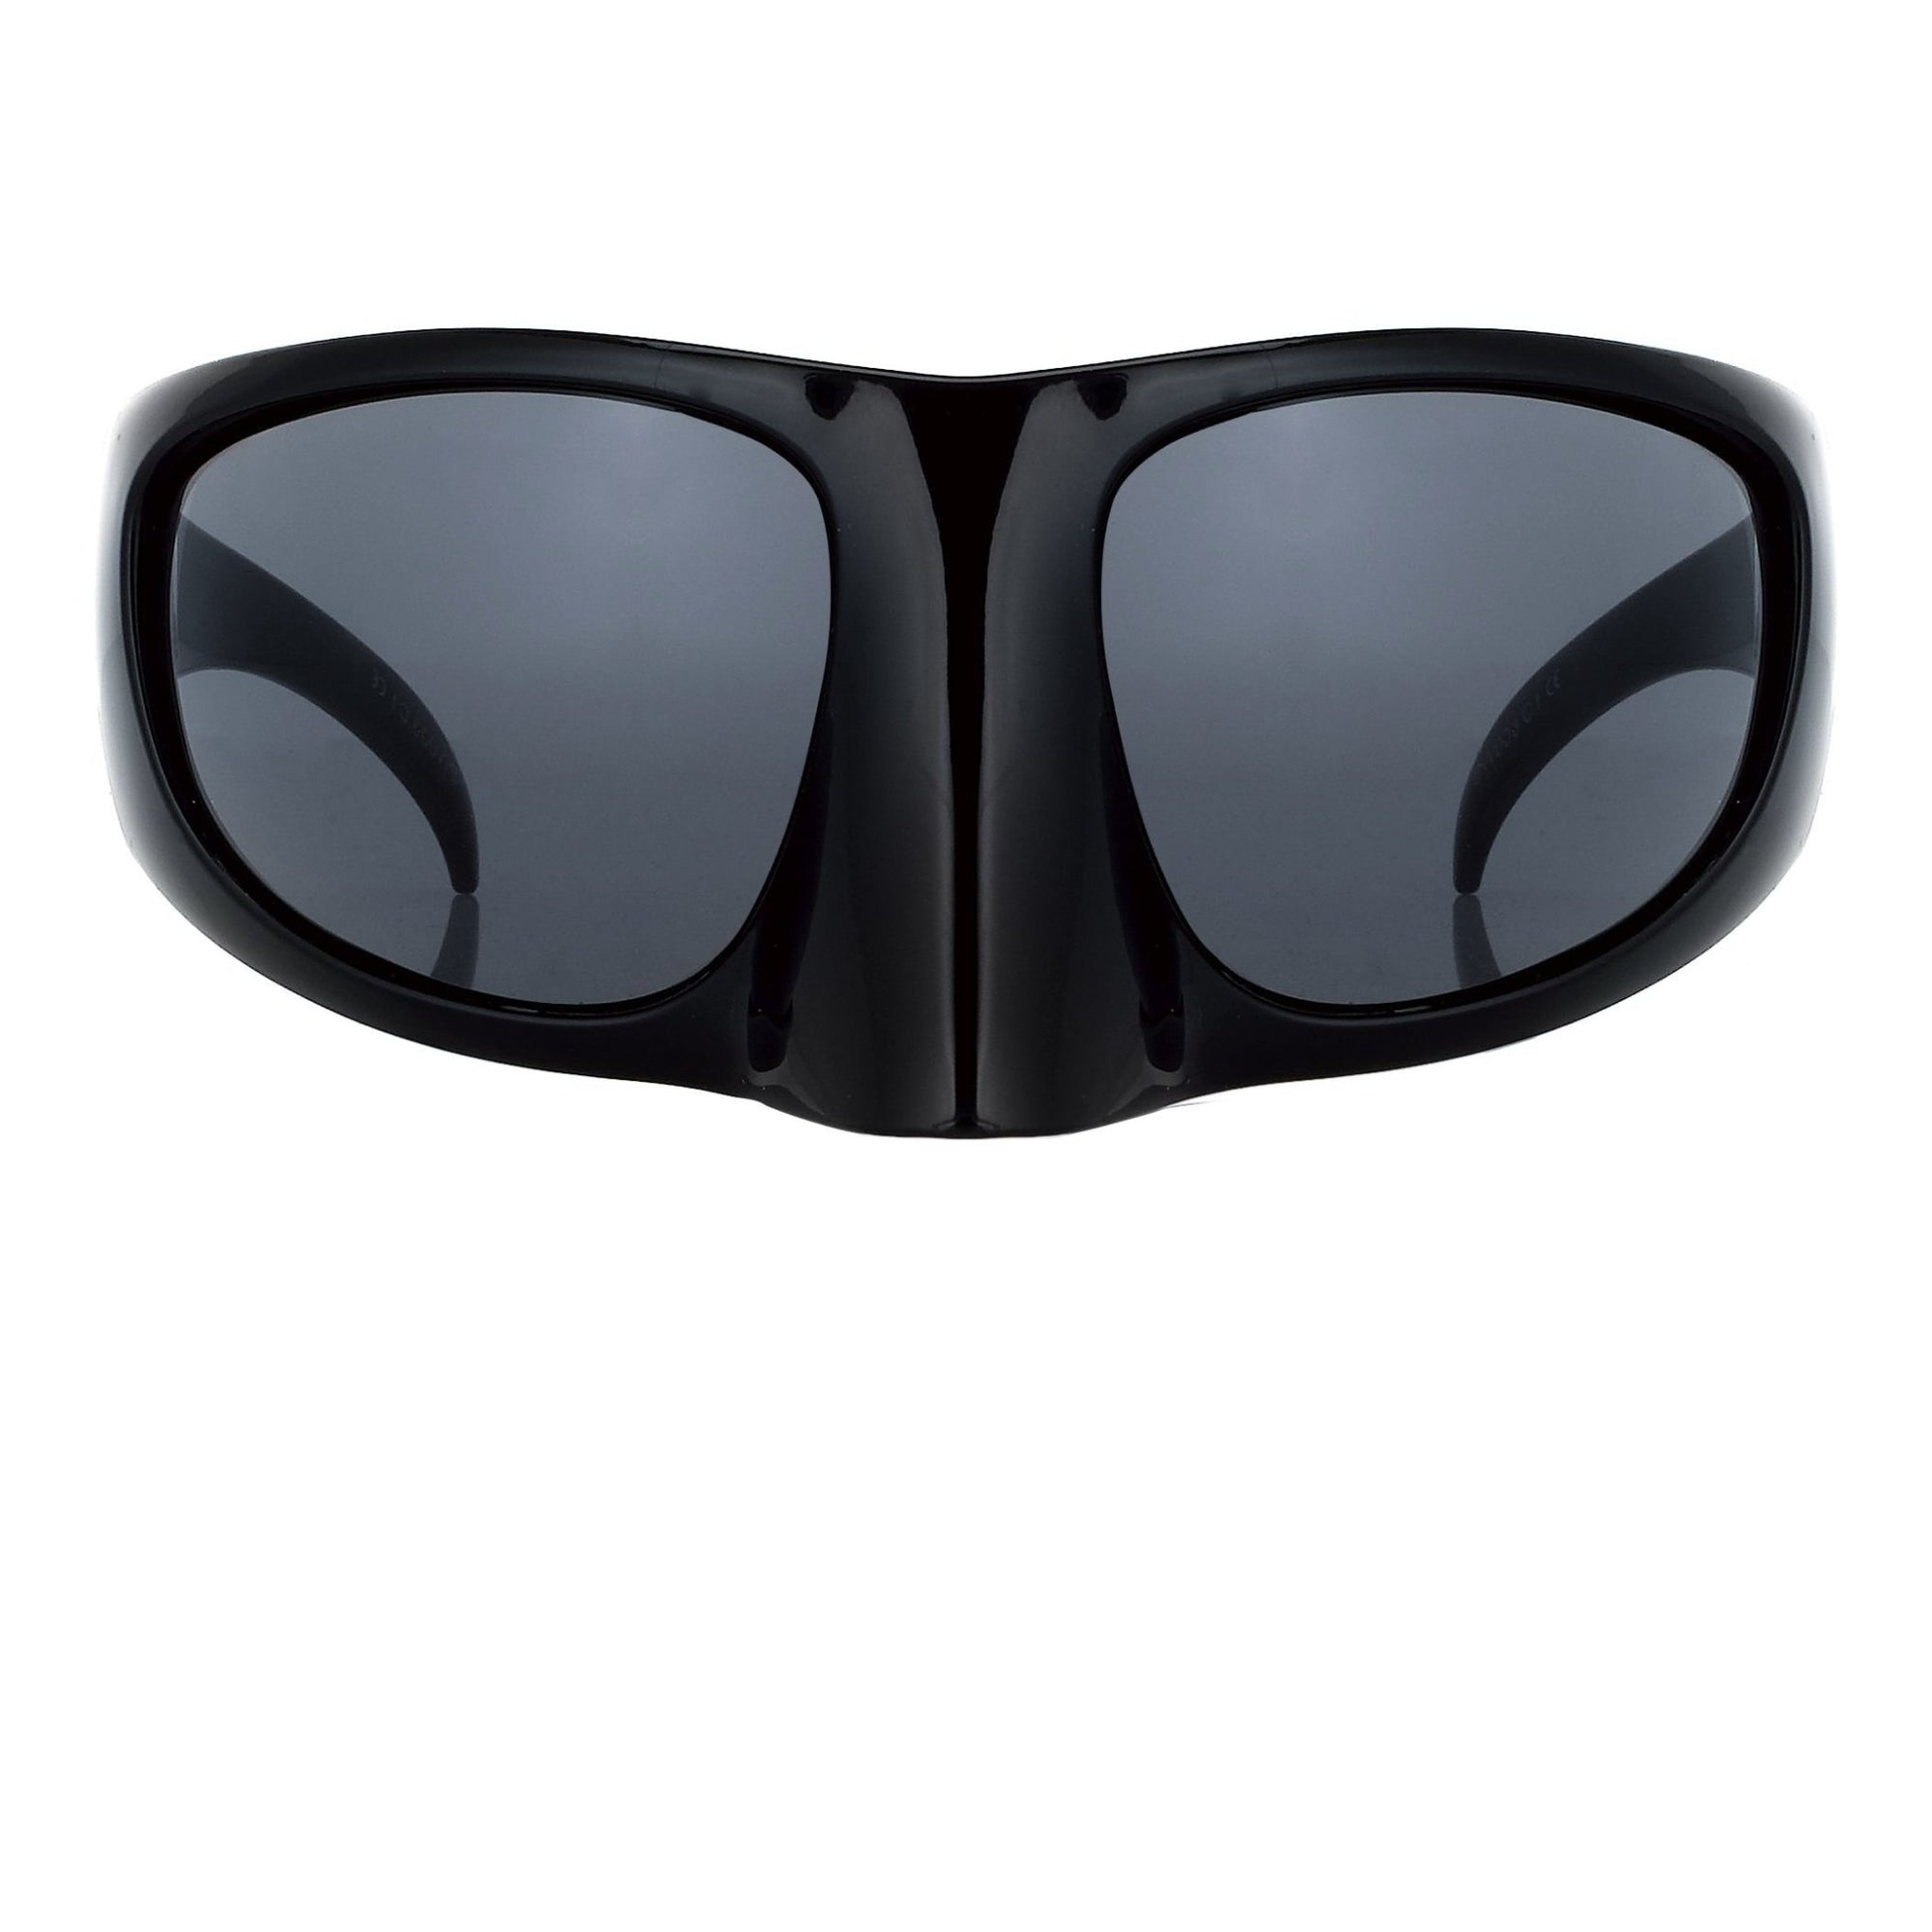 Bernhard Willhelm Sunglasses Black Mask With Blue Lenses 8BW3C1BLACK - Watches & Crystals